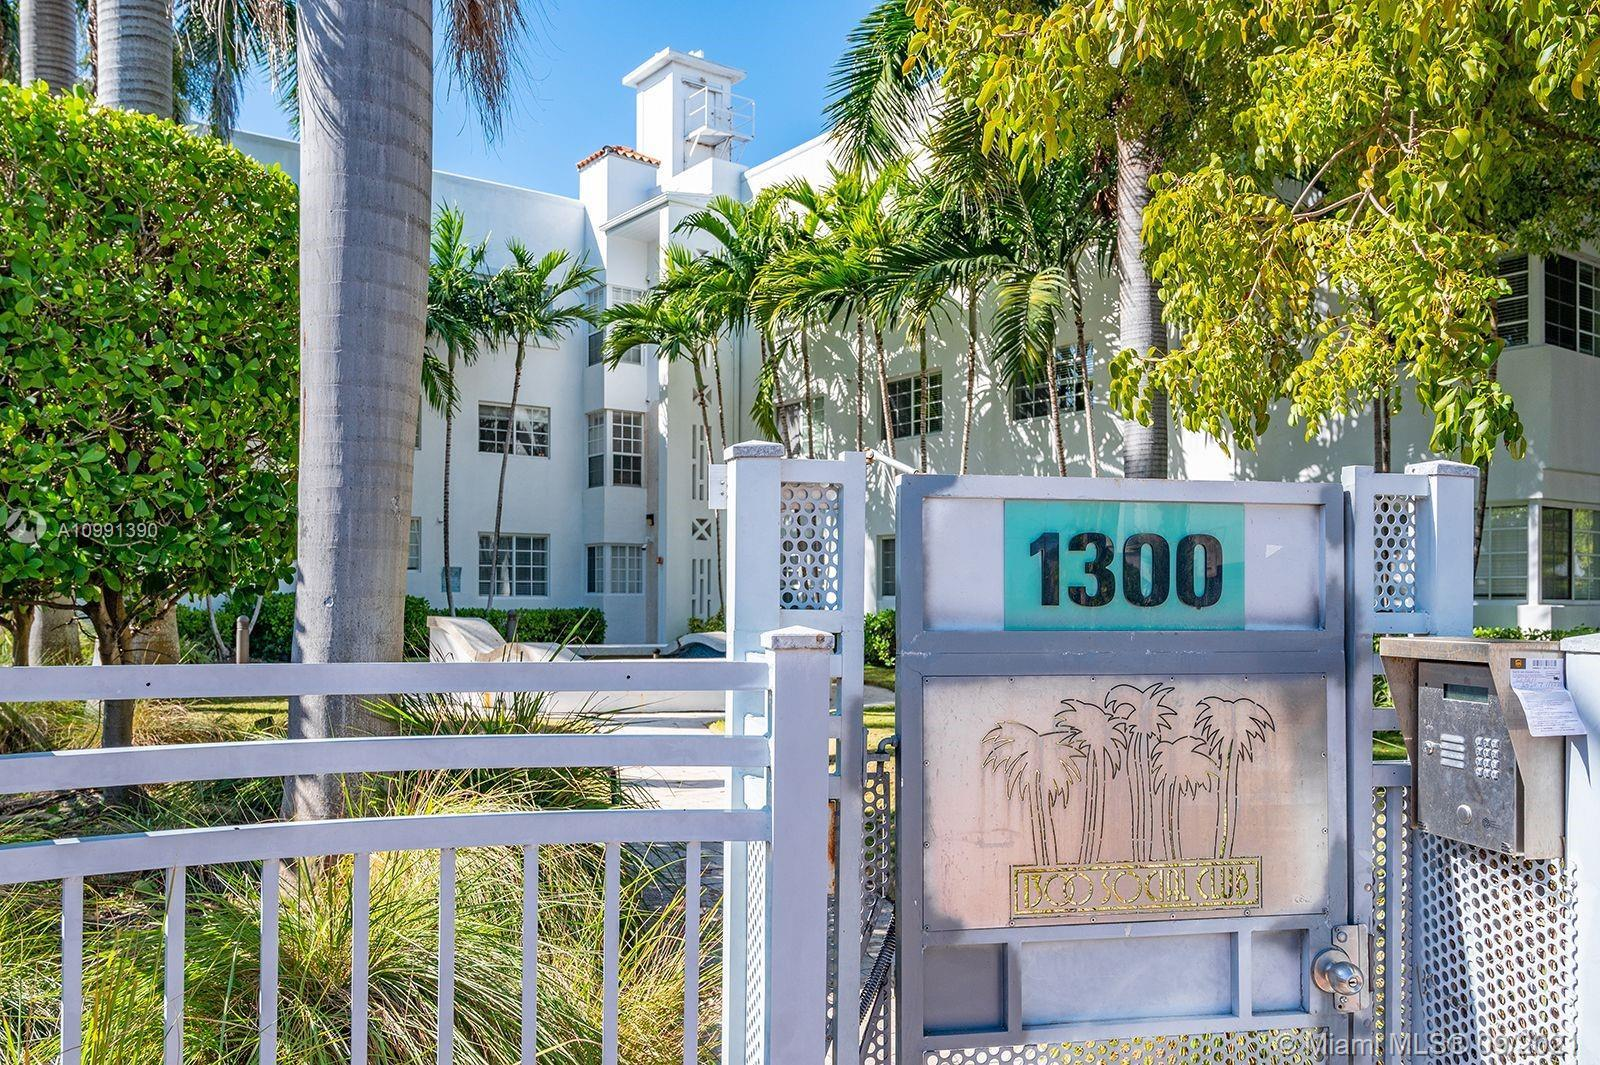 Great Condo Conversion in the heart of Sobe. Steps from the beach, Lincoln Rd and the Flamingo park.